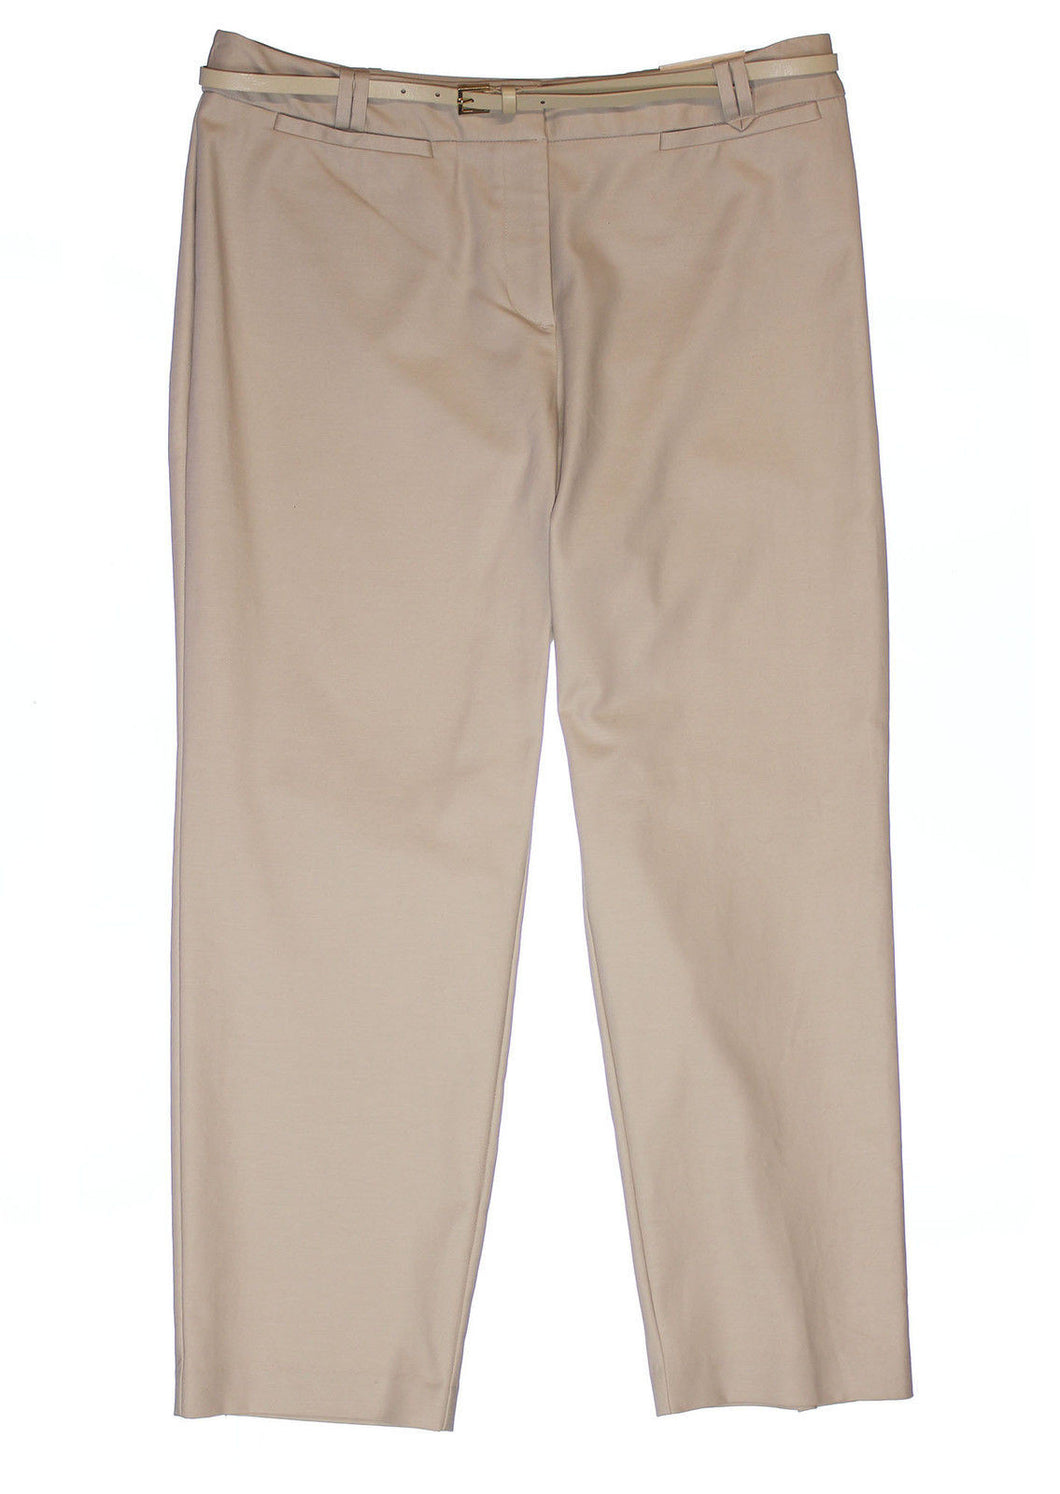 Charter Club Beige Tummy Slimming Slim Leg Belted Ankle Pants